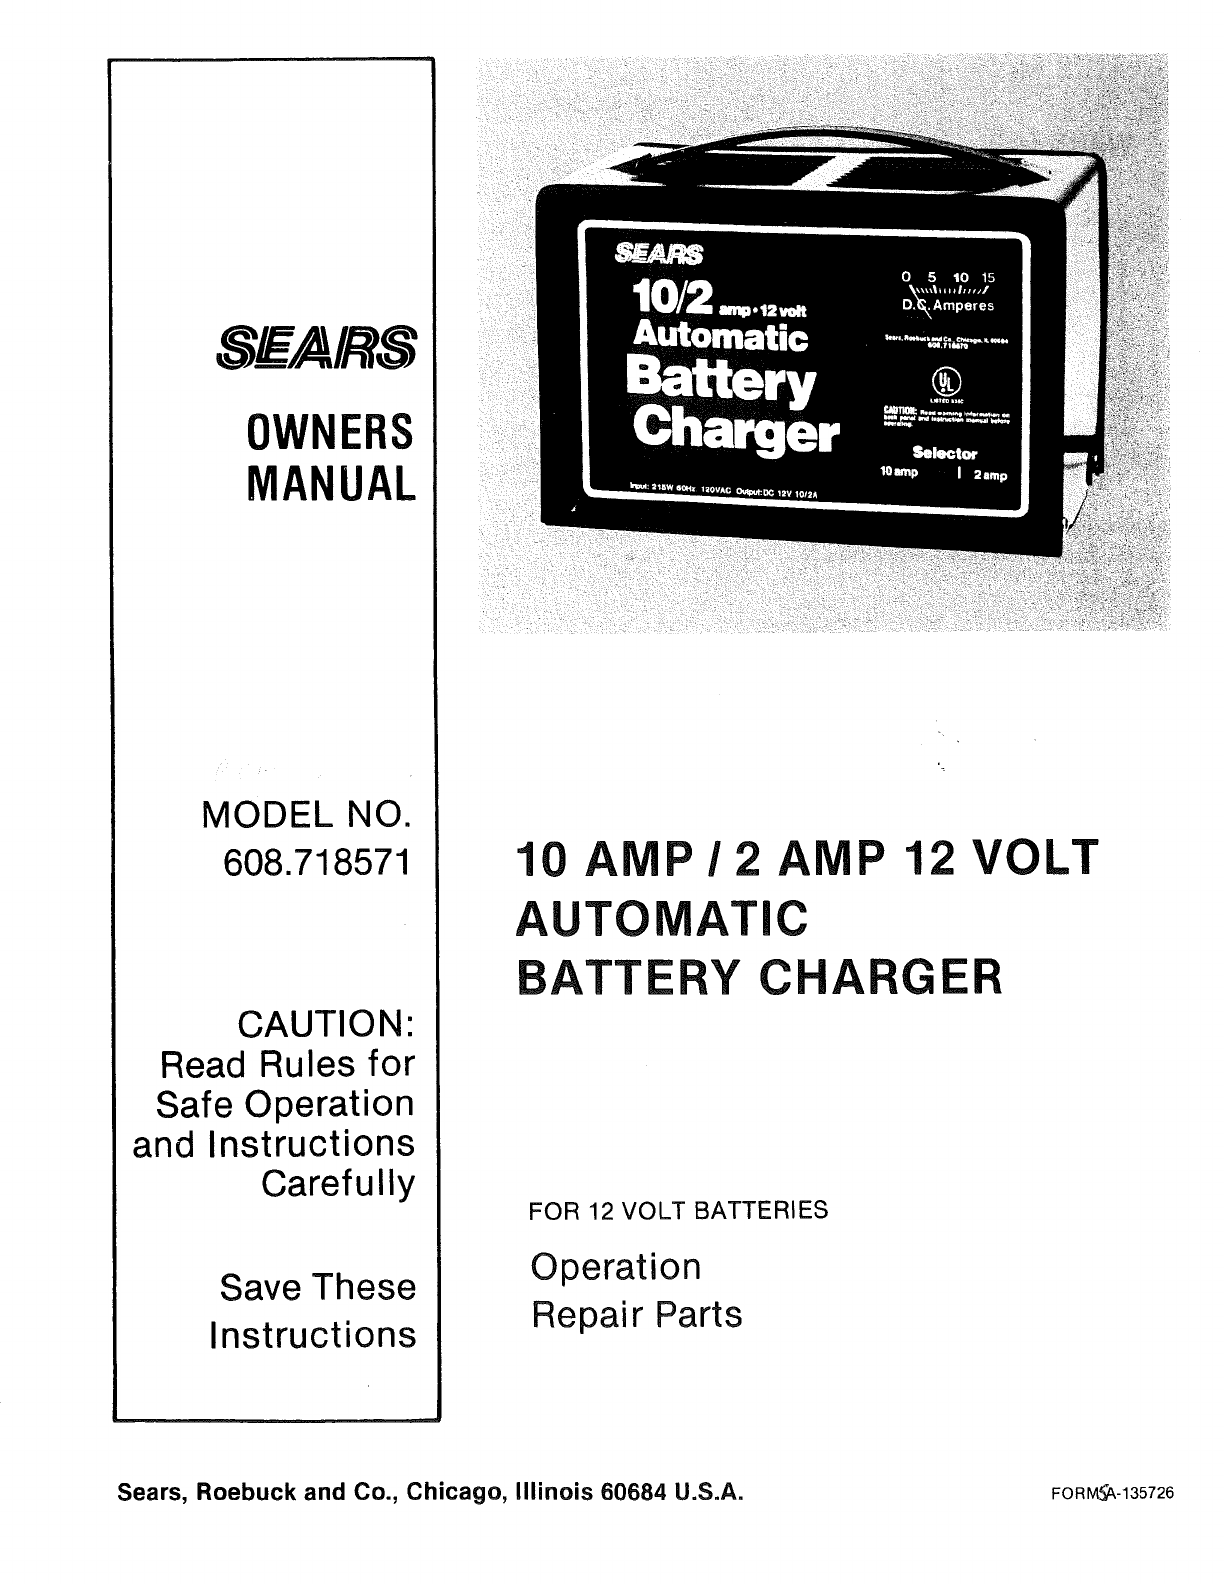 sears automobile battery charger 608 718571 user guide rh auto manualsonline com sears service manuals sears service manuals.pdf